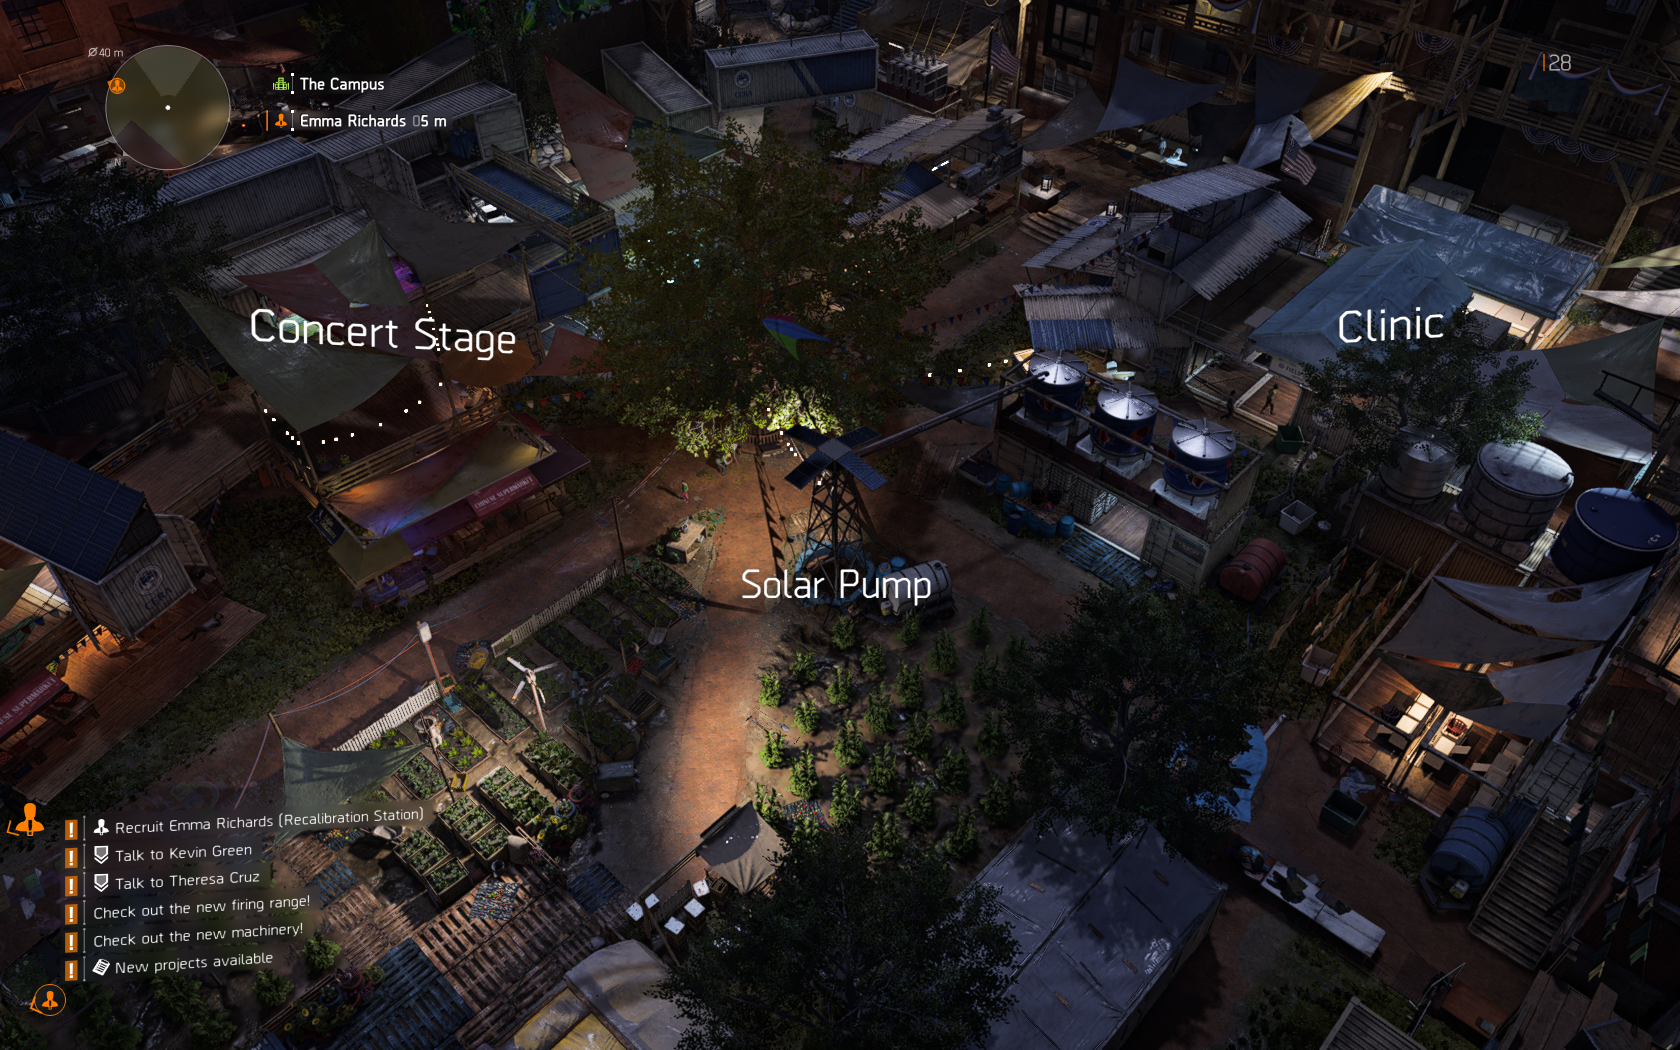 Tom Clancy's The Division 2 Screenshot 2019.03.20 - 00.00.14.57.png